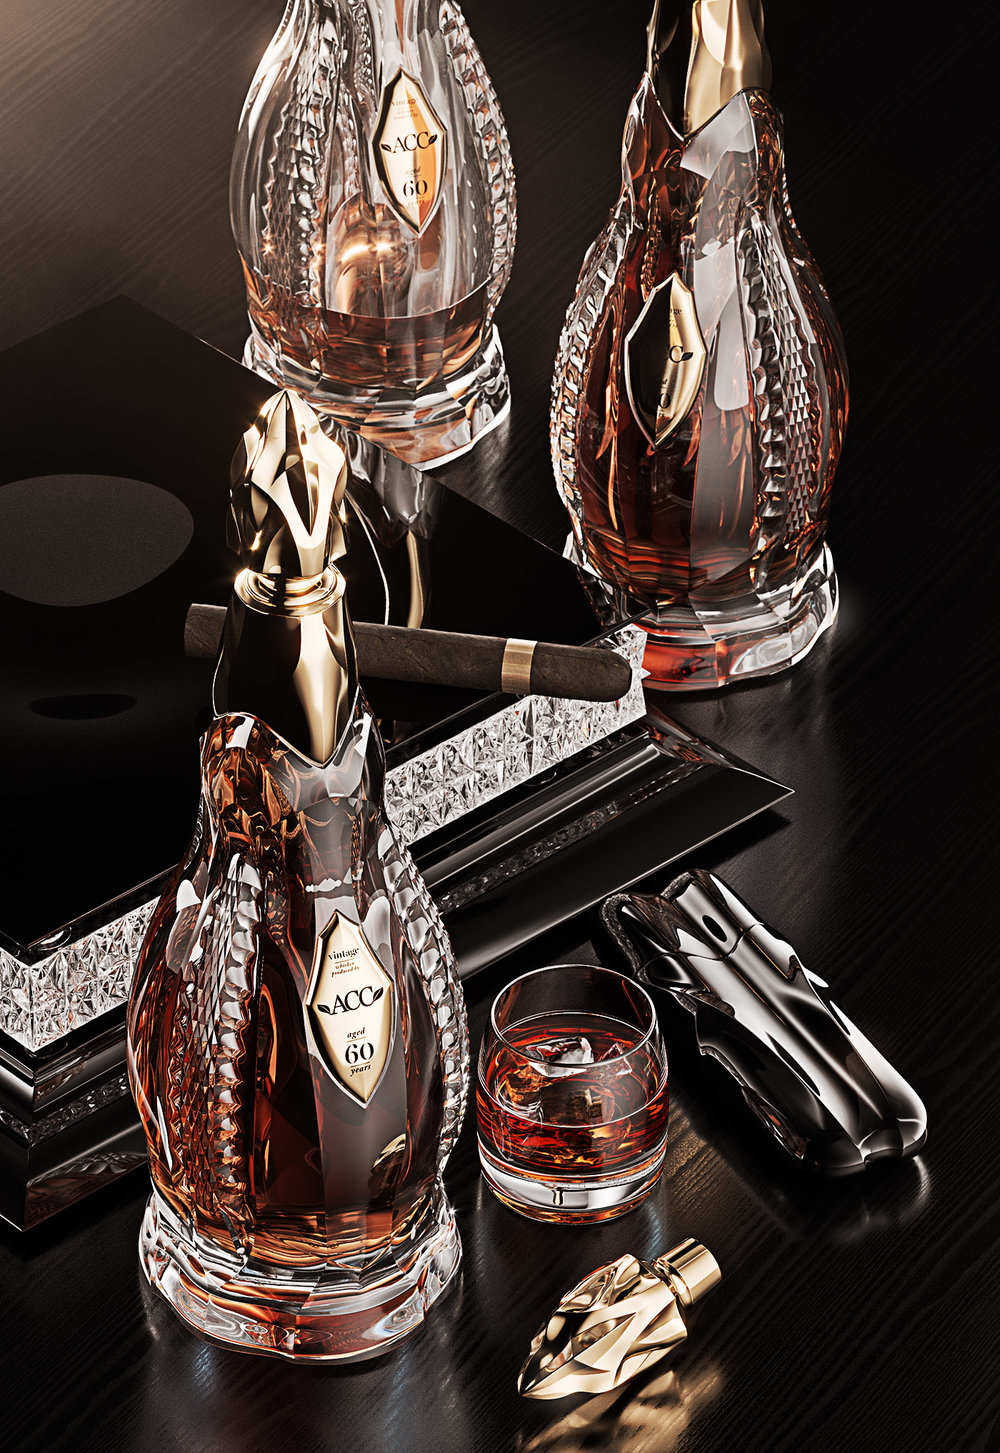 Luxury whisky bottle 5.jpg